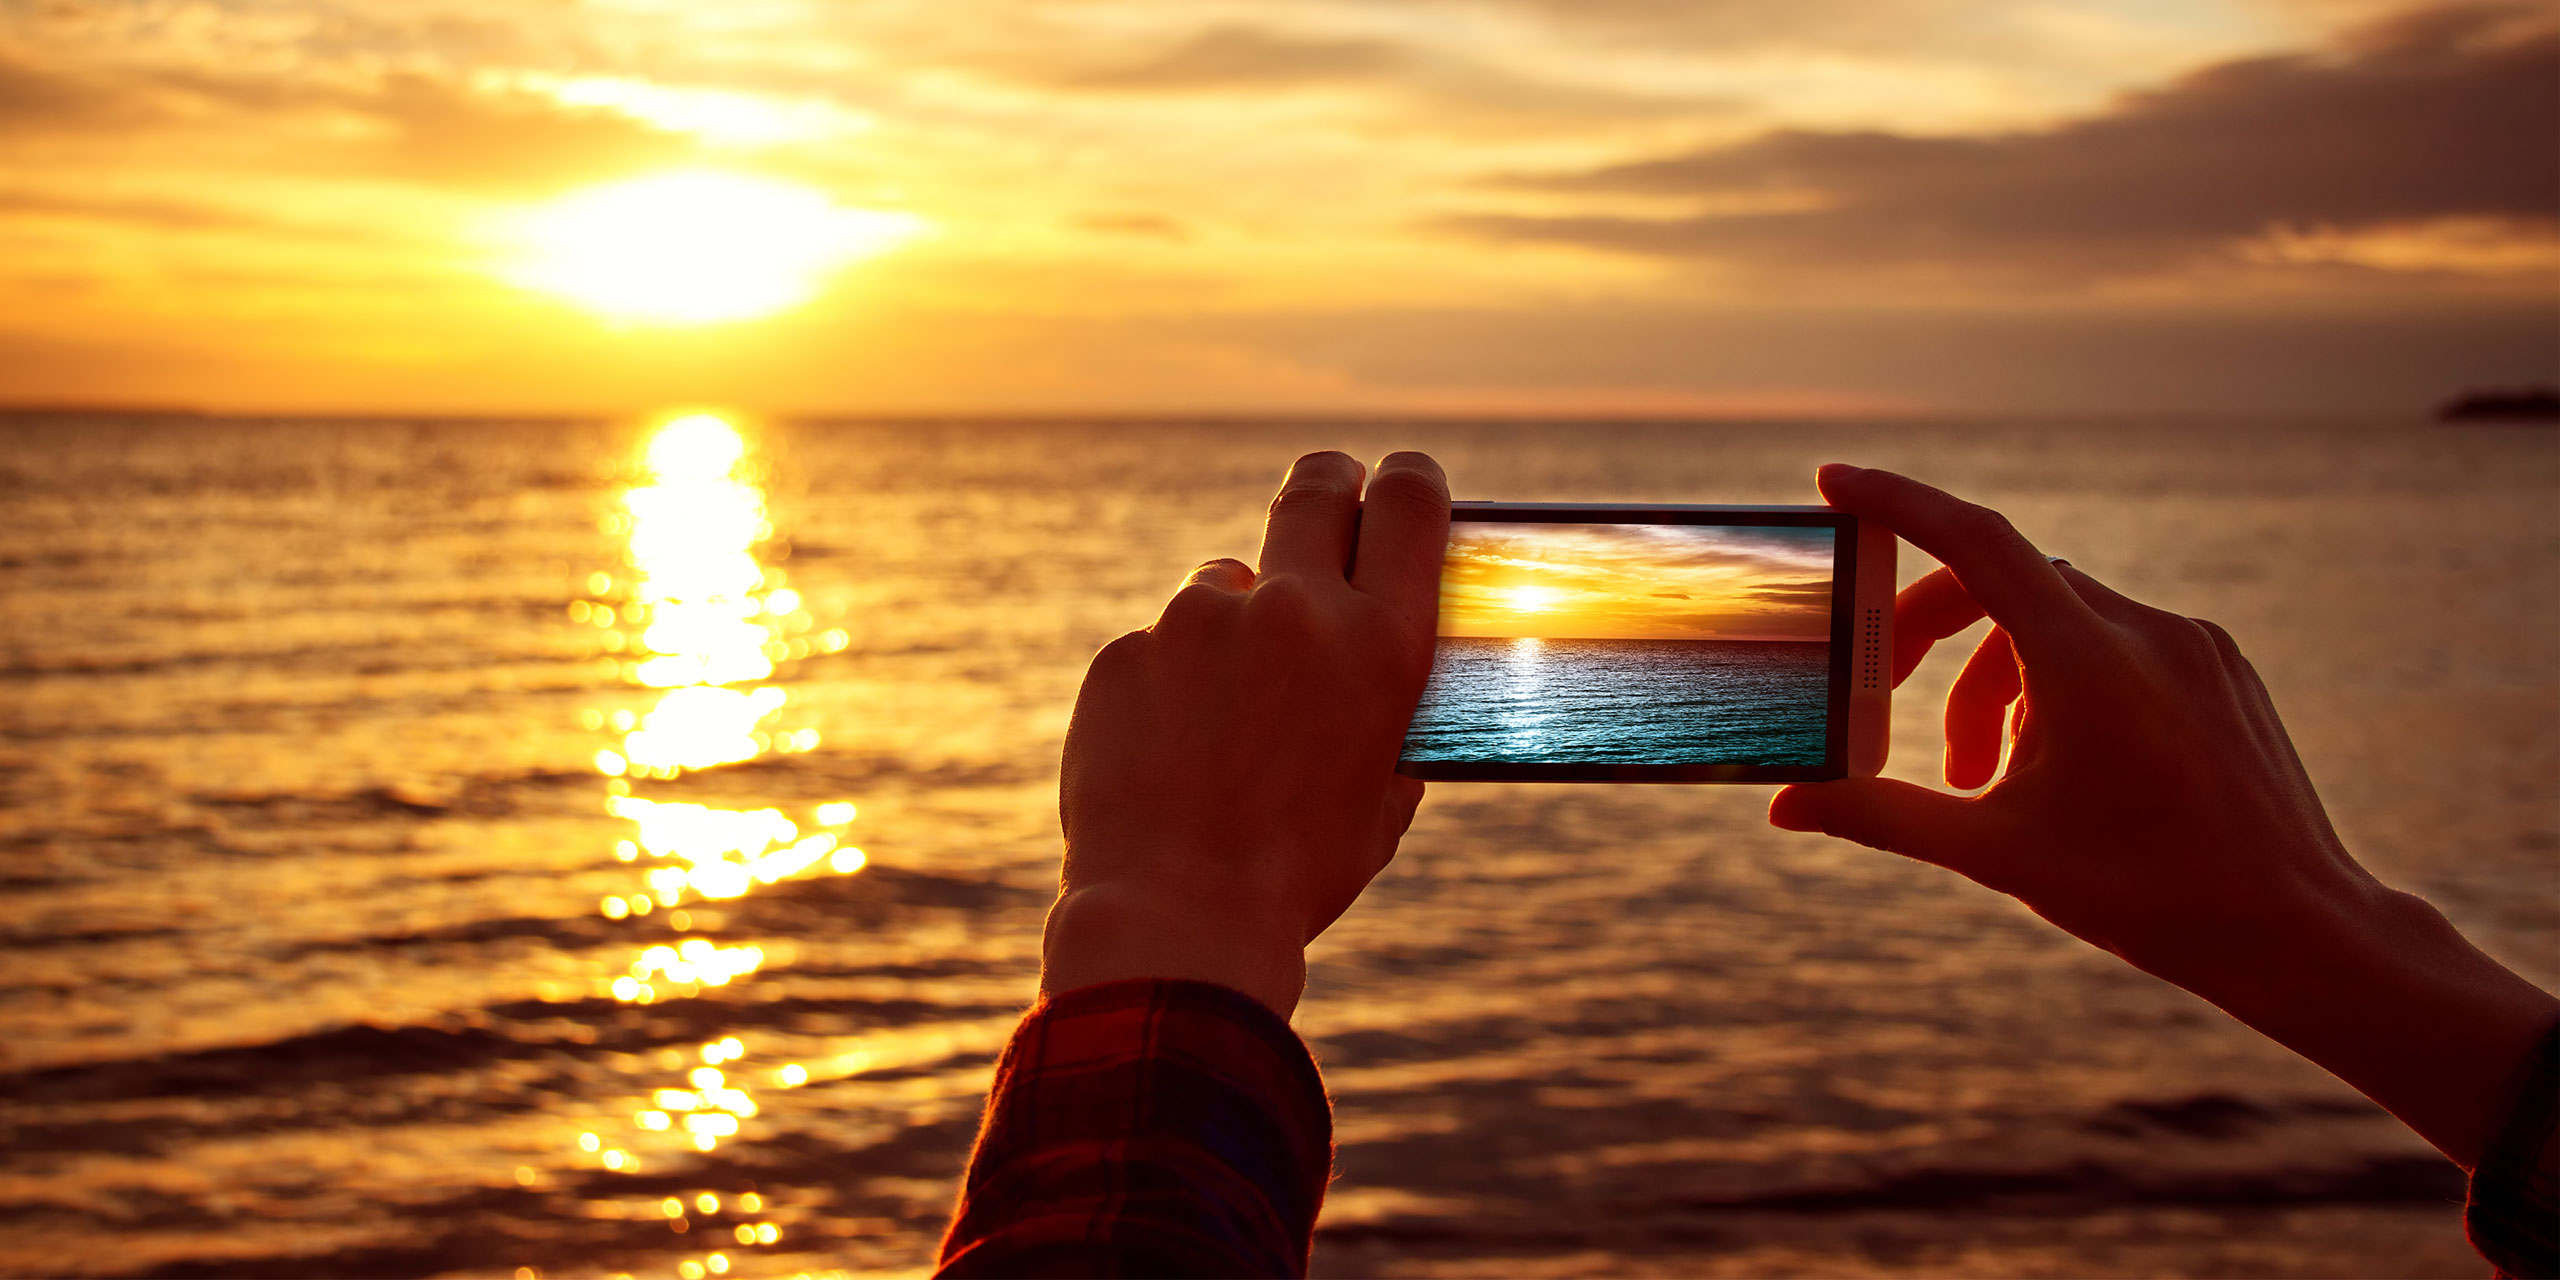 Phone Photography; Courtesy of LeManna/Shutterstock.com